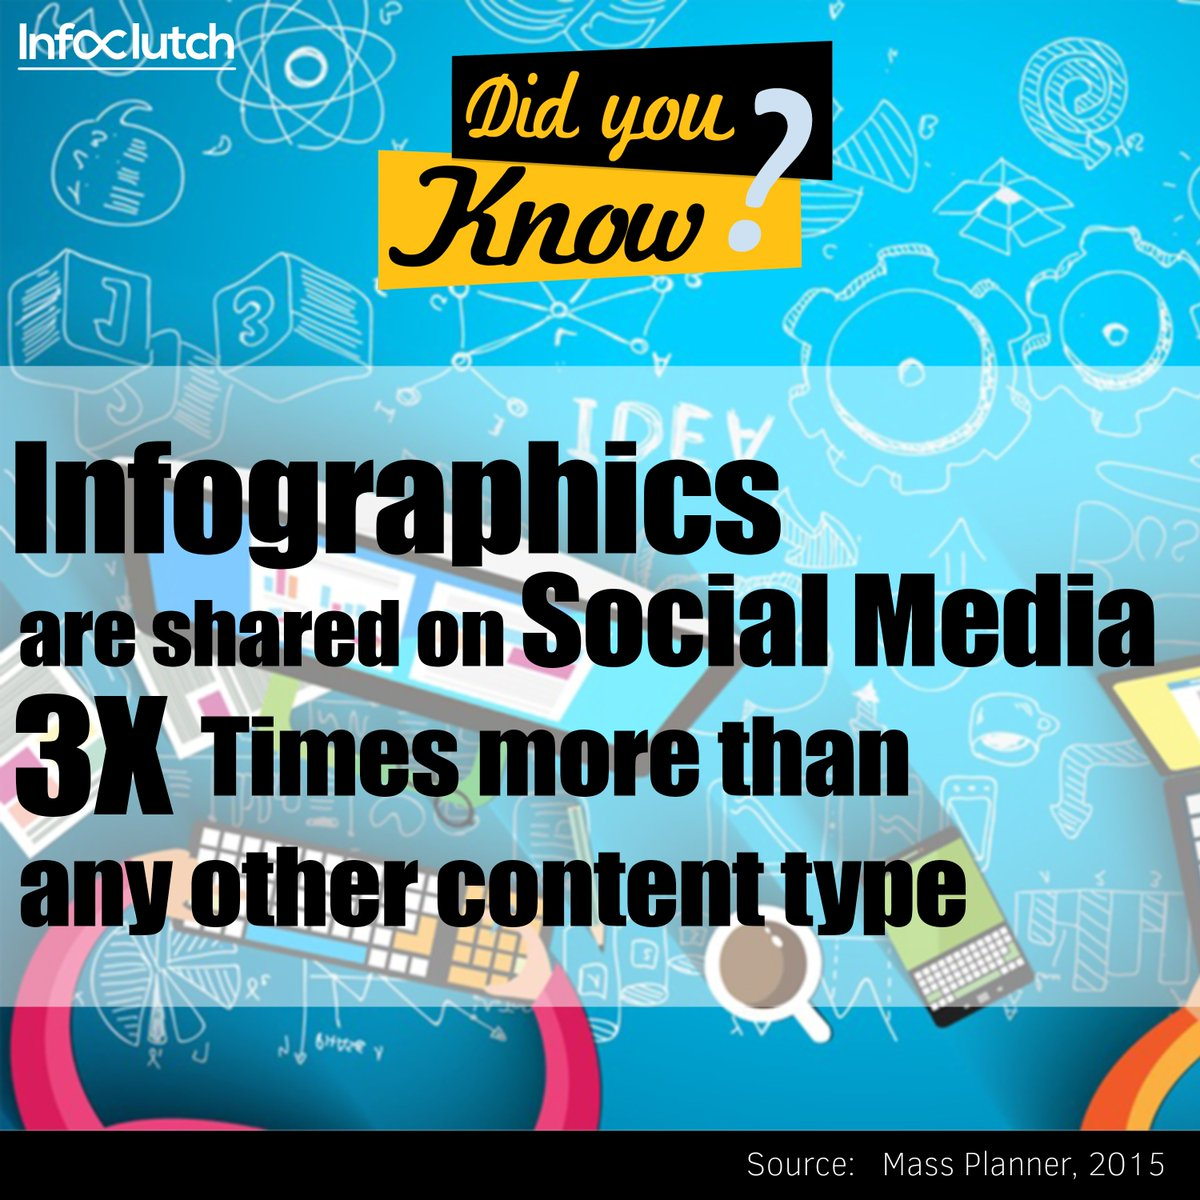 #Infographics are shared on #SocialMedia 3x times more than any other content type. <br>http://pic.twitter.com/83GJFVZn3K